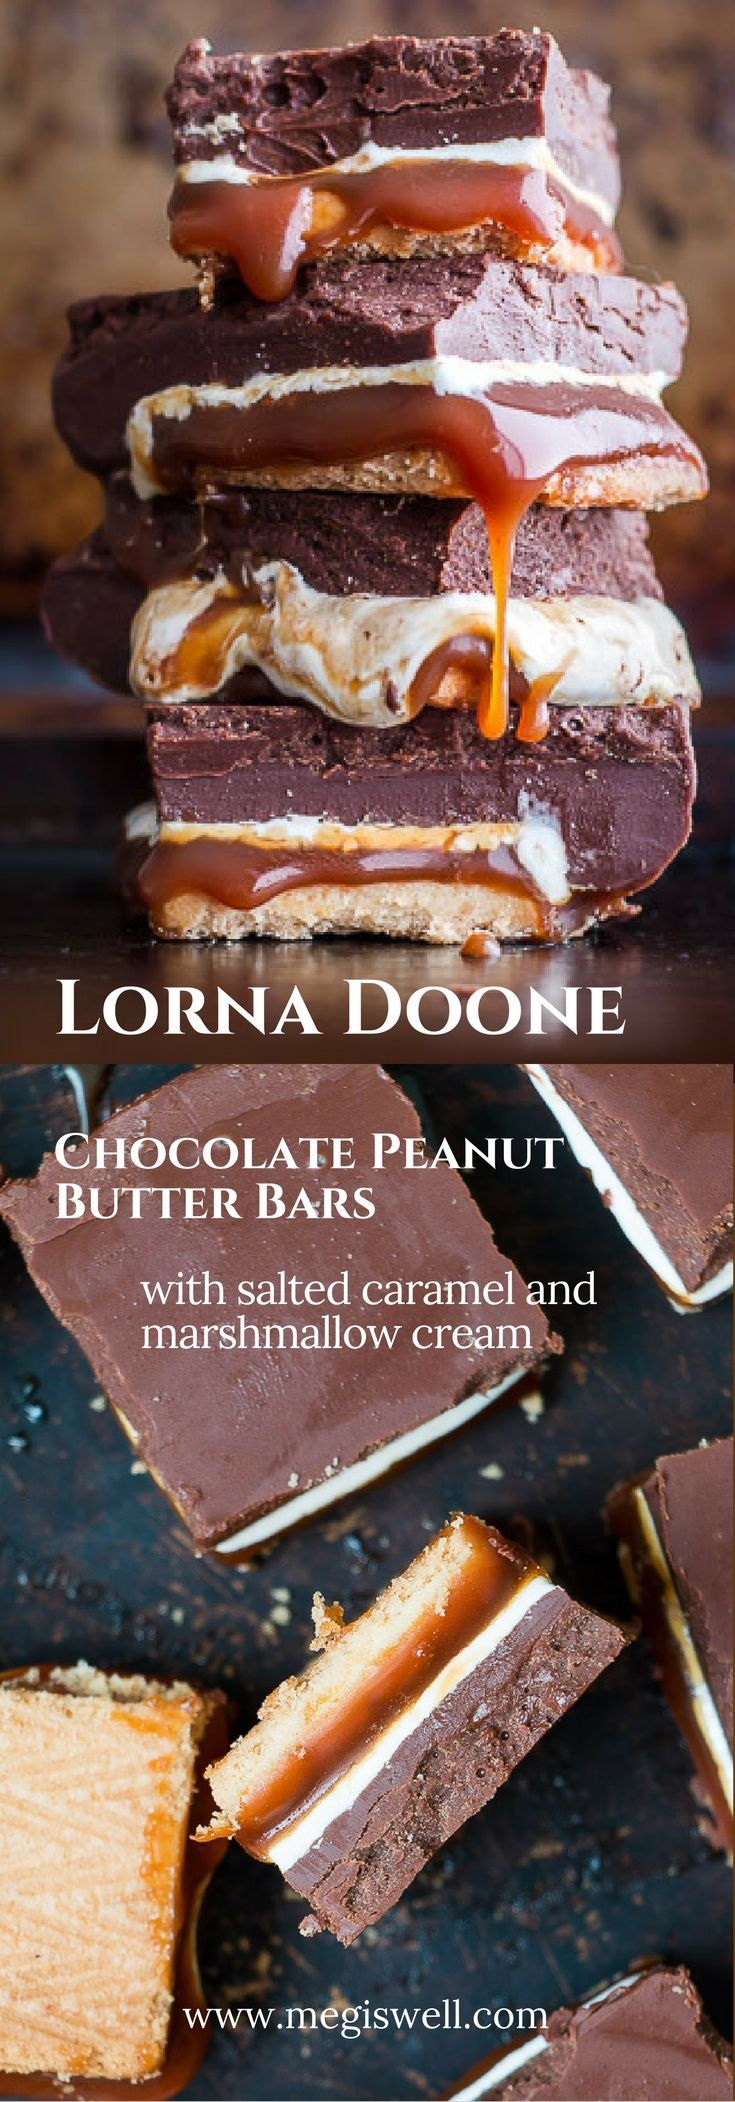 These no-bake Lorna Doone Chocolate Peanut Butter Bars are layered bites of everything good: cookies, salted caramel, marshmallow cream, and chocolate peanut butter. | http://www.megiswell.com